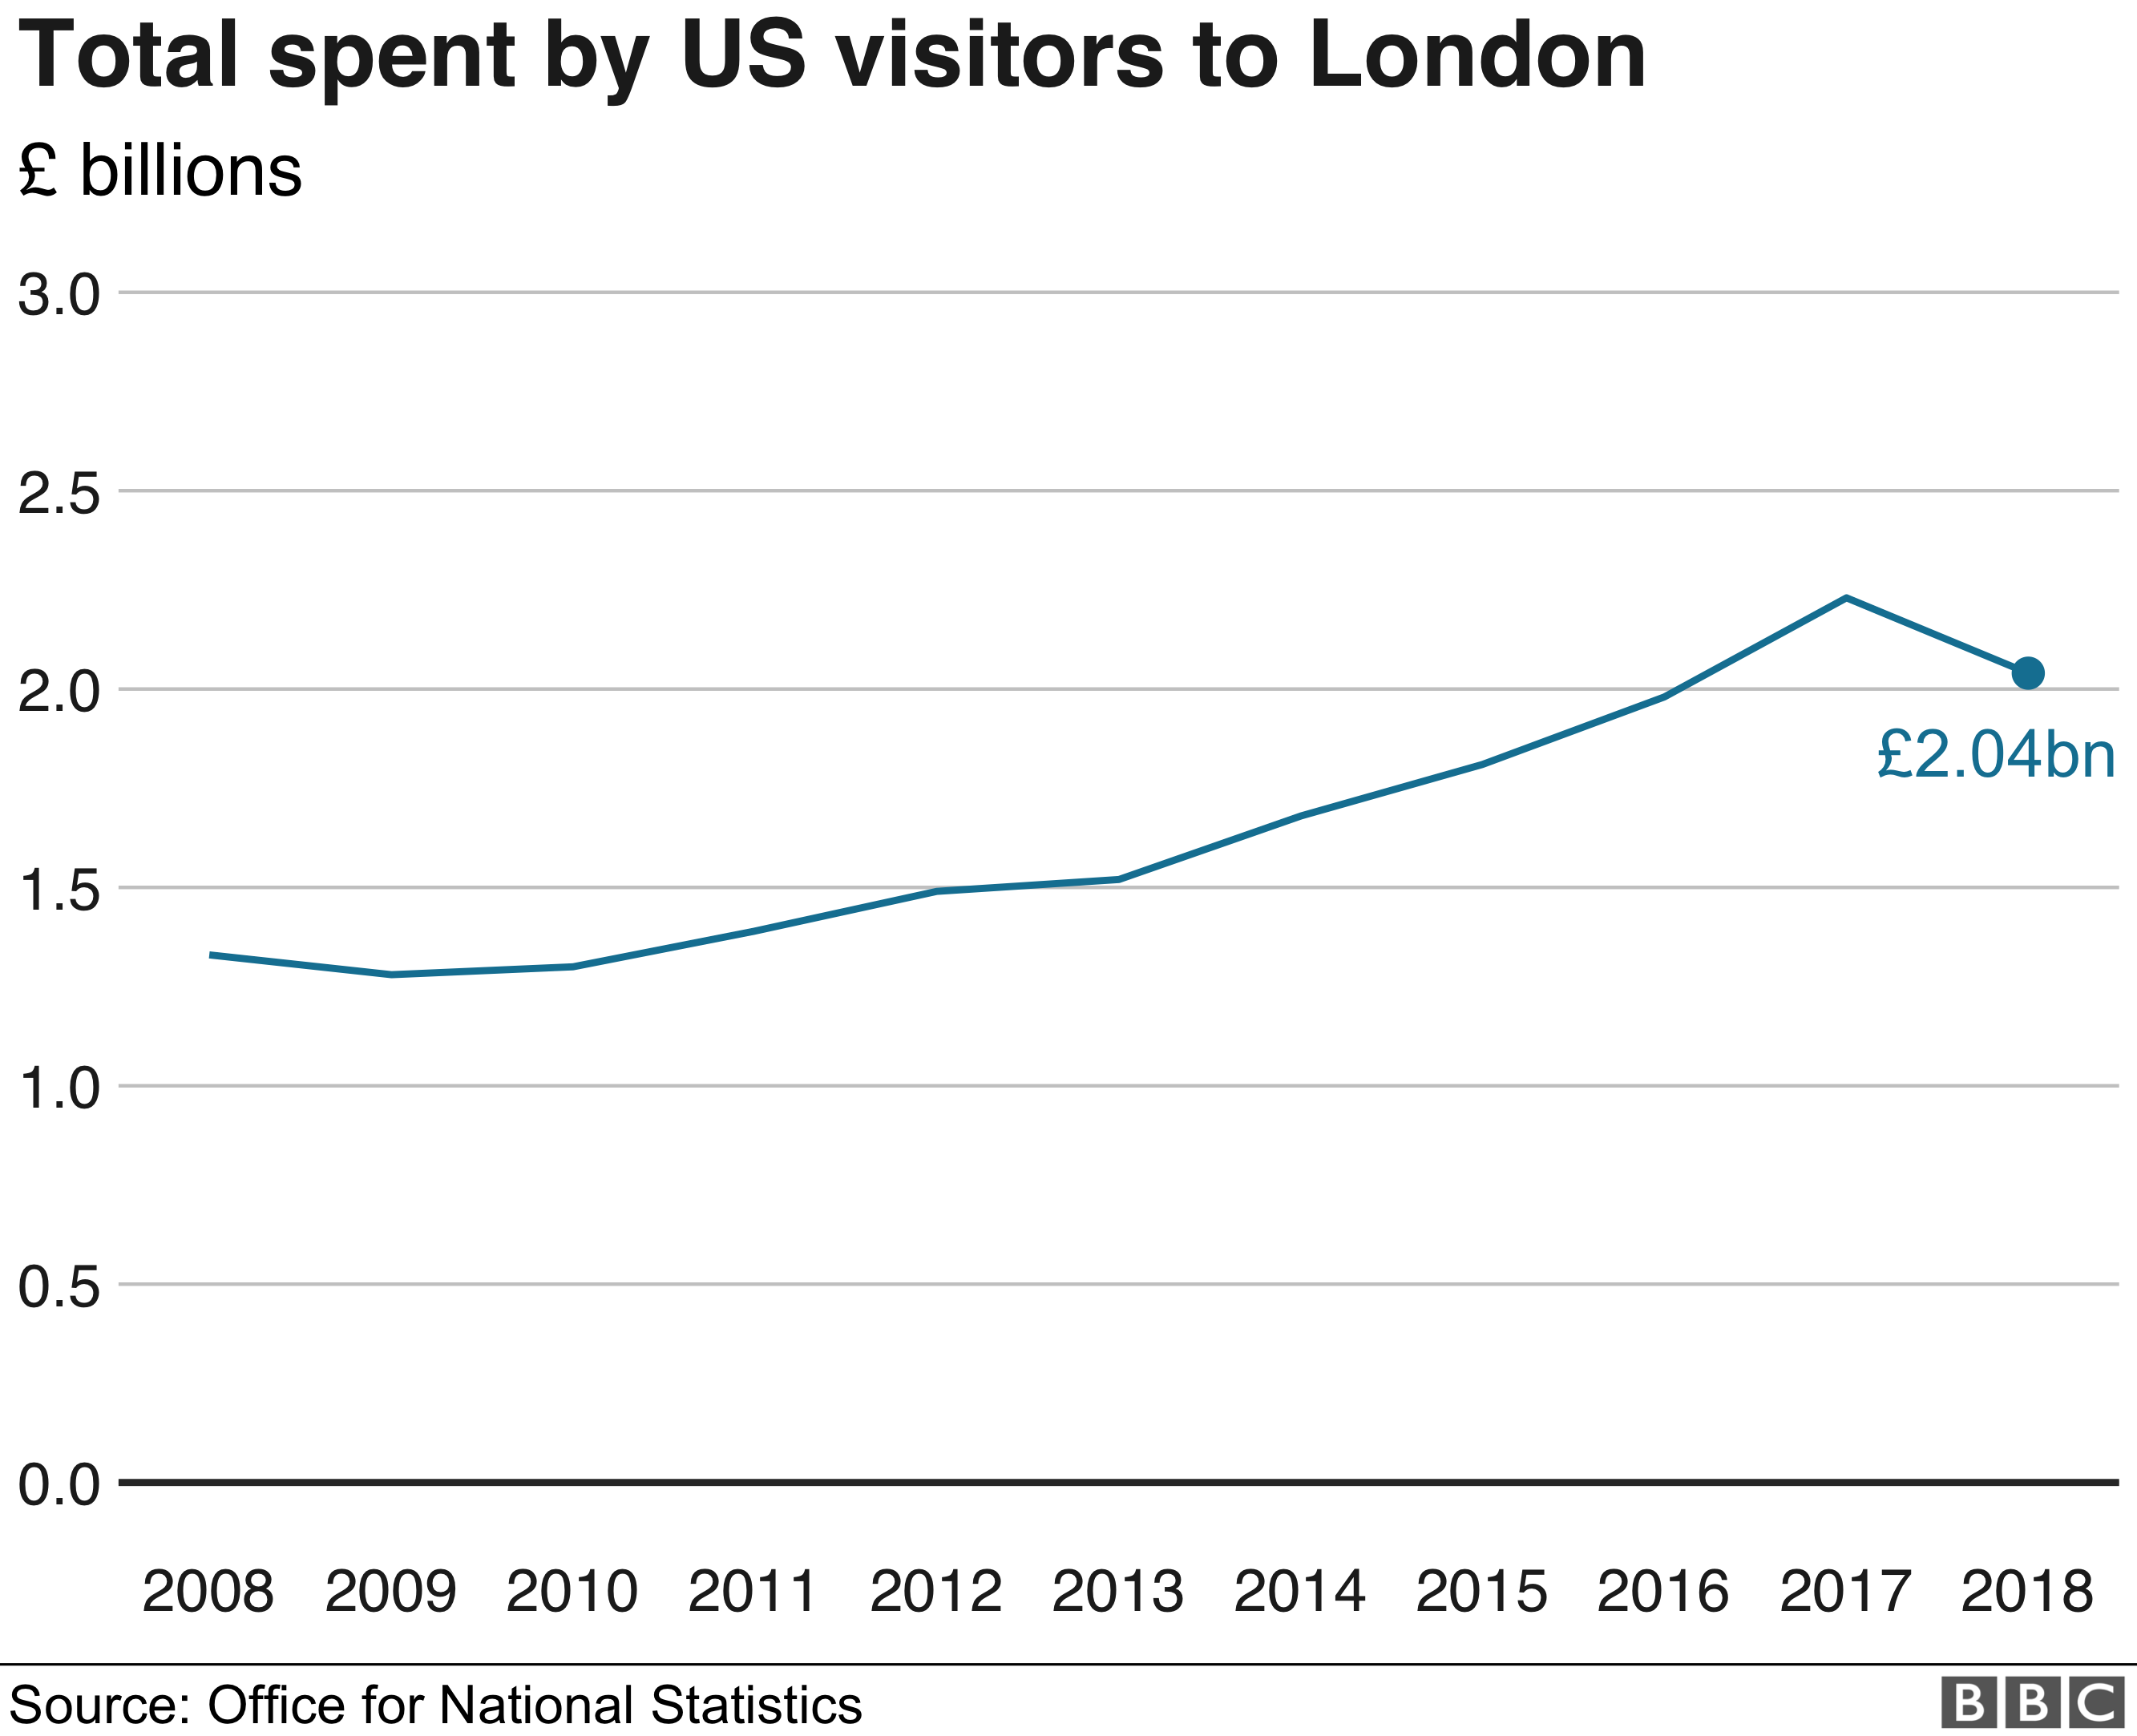 Graph showing an increase in spending by US Visitors to London over the past ten years, with the exception of 2018 when spending dipped slightly.